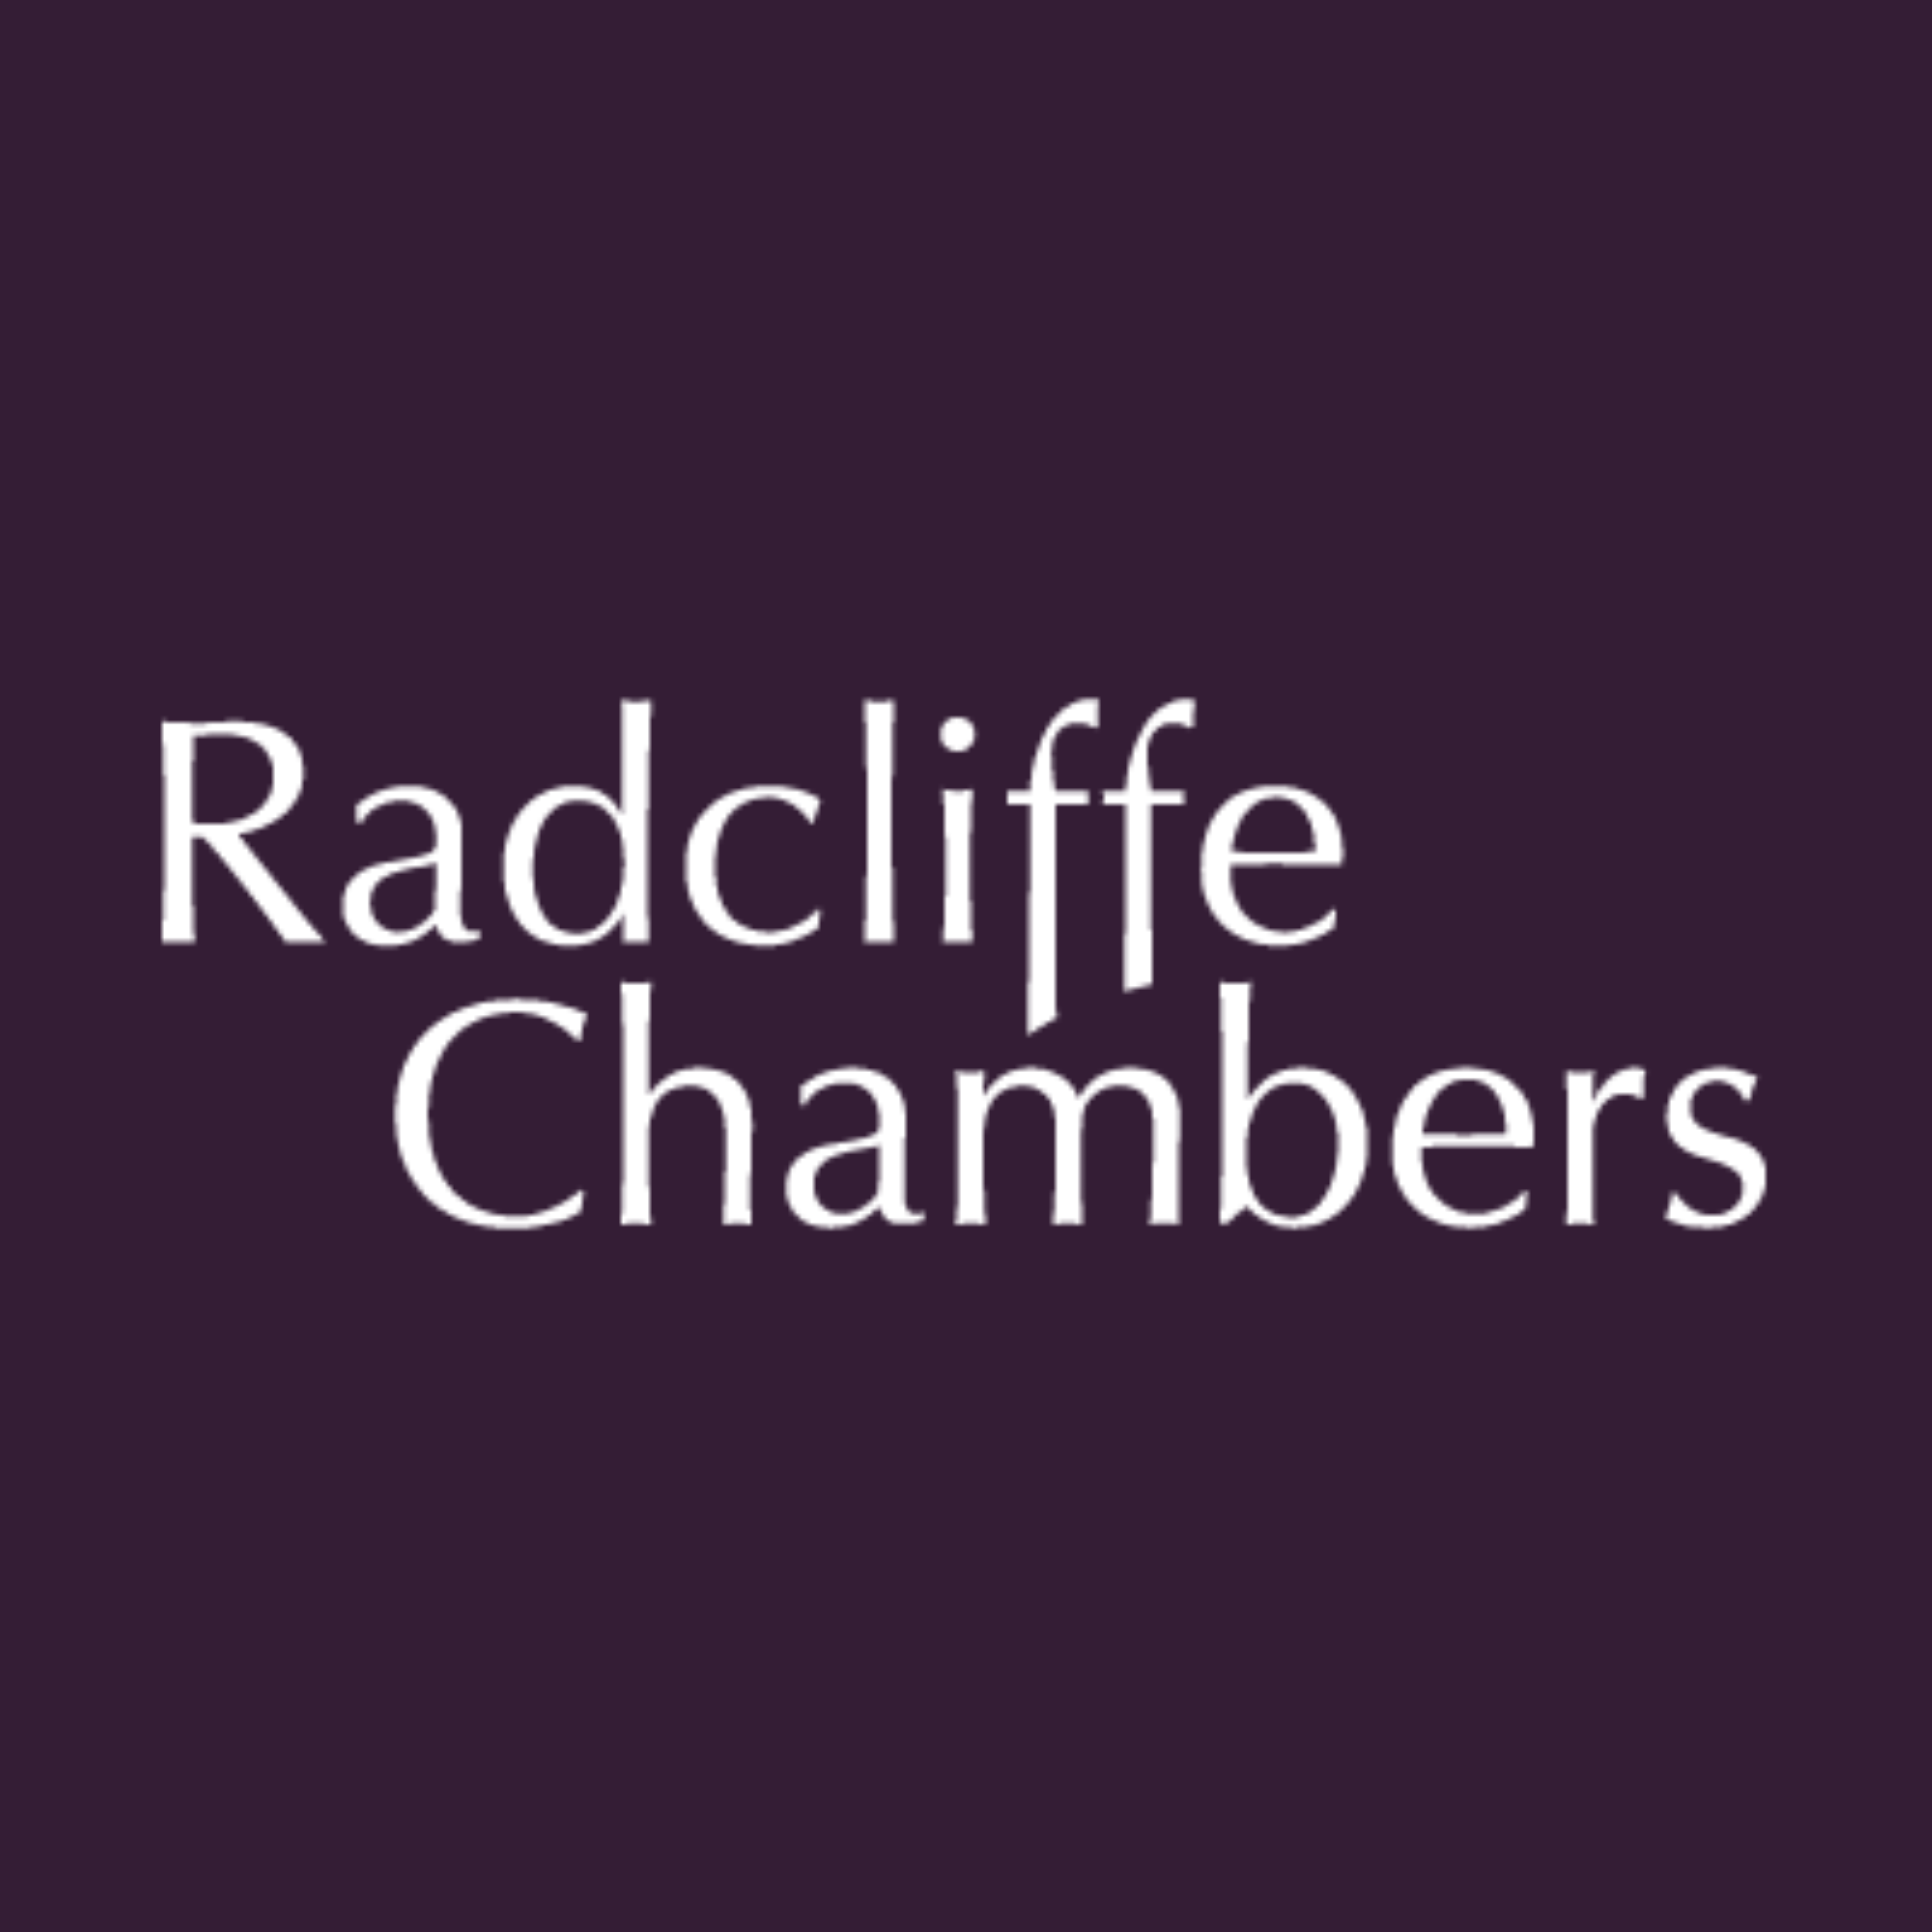 Radcliffe Chambers